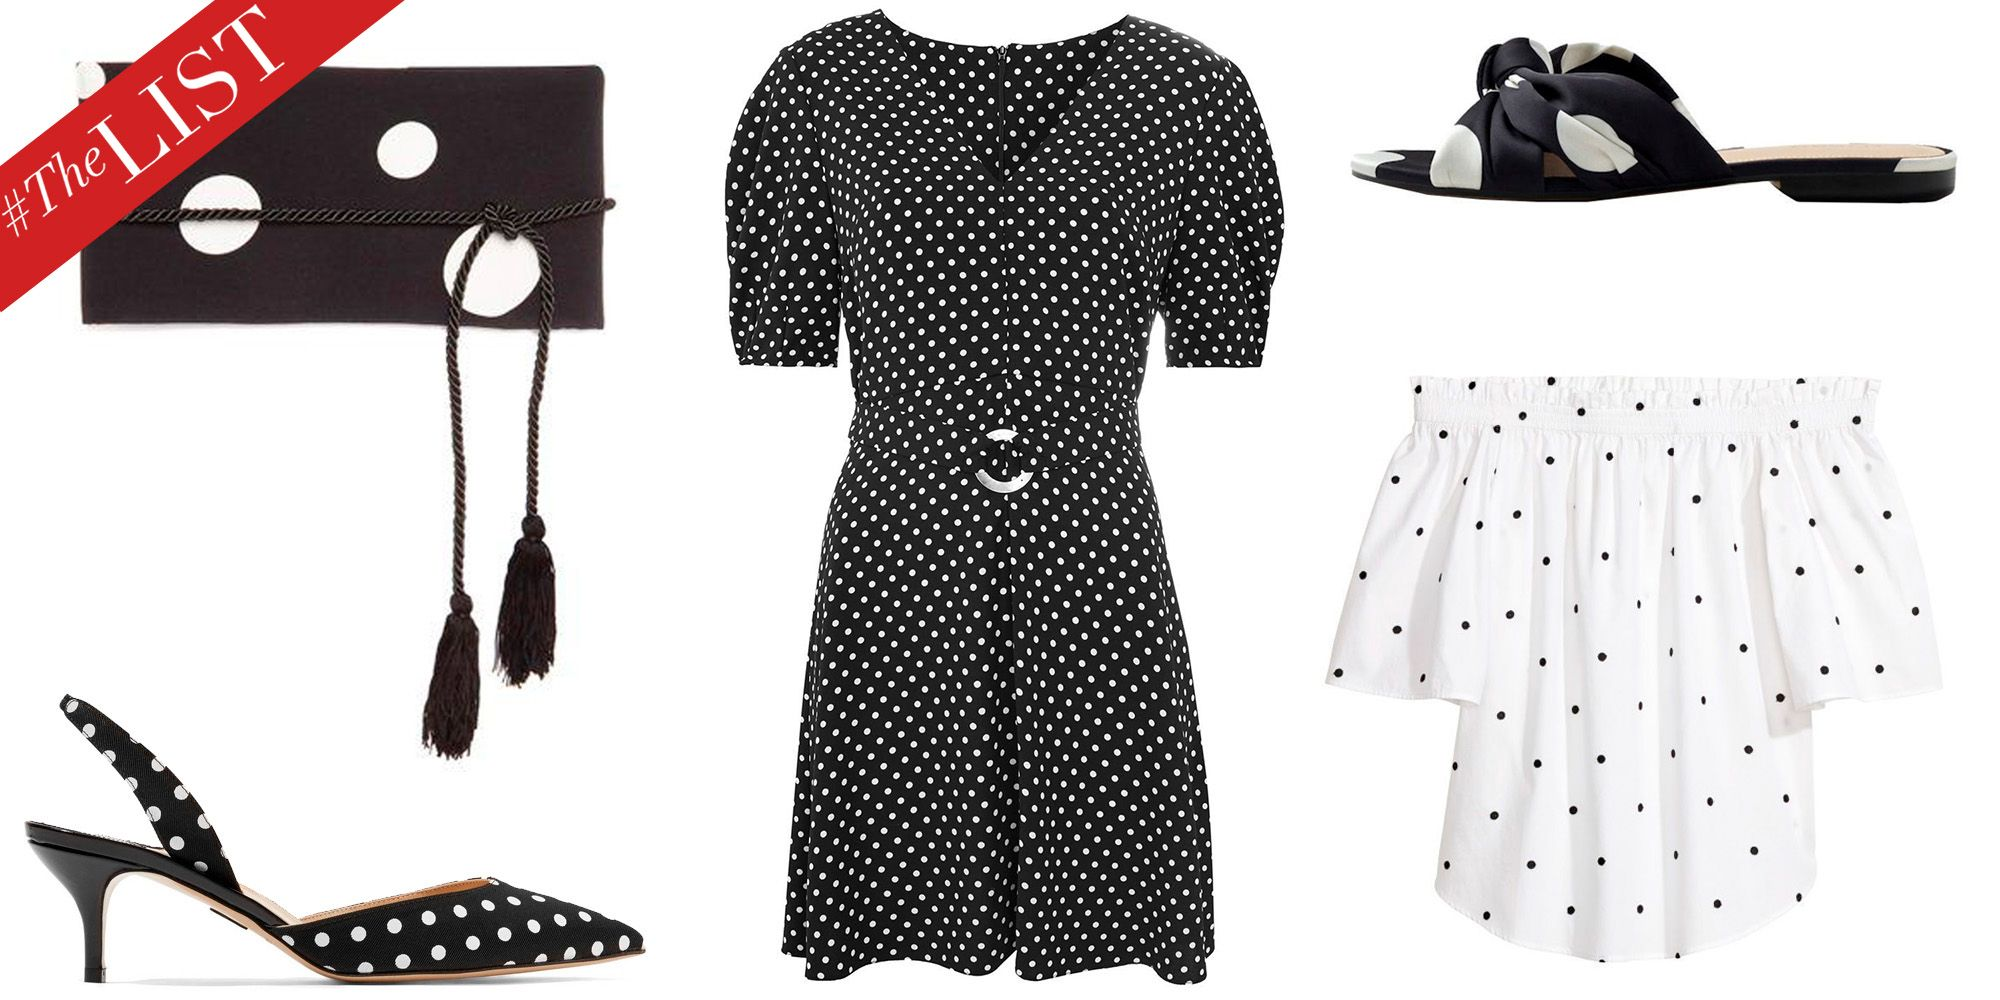 1fe9ce38 Polka Dot Fashion Trend 2018 - Polka Dot Clothing and Accessories